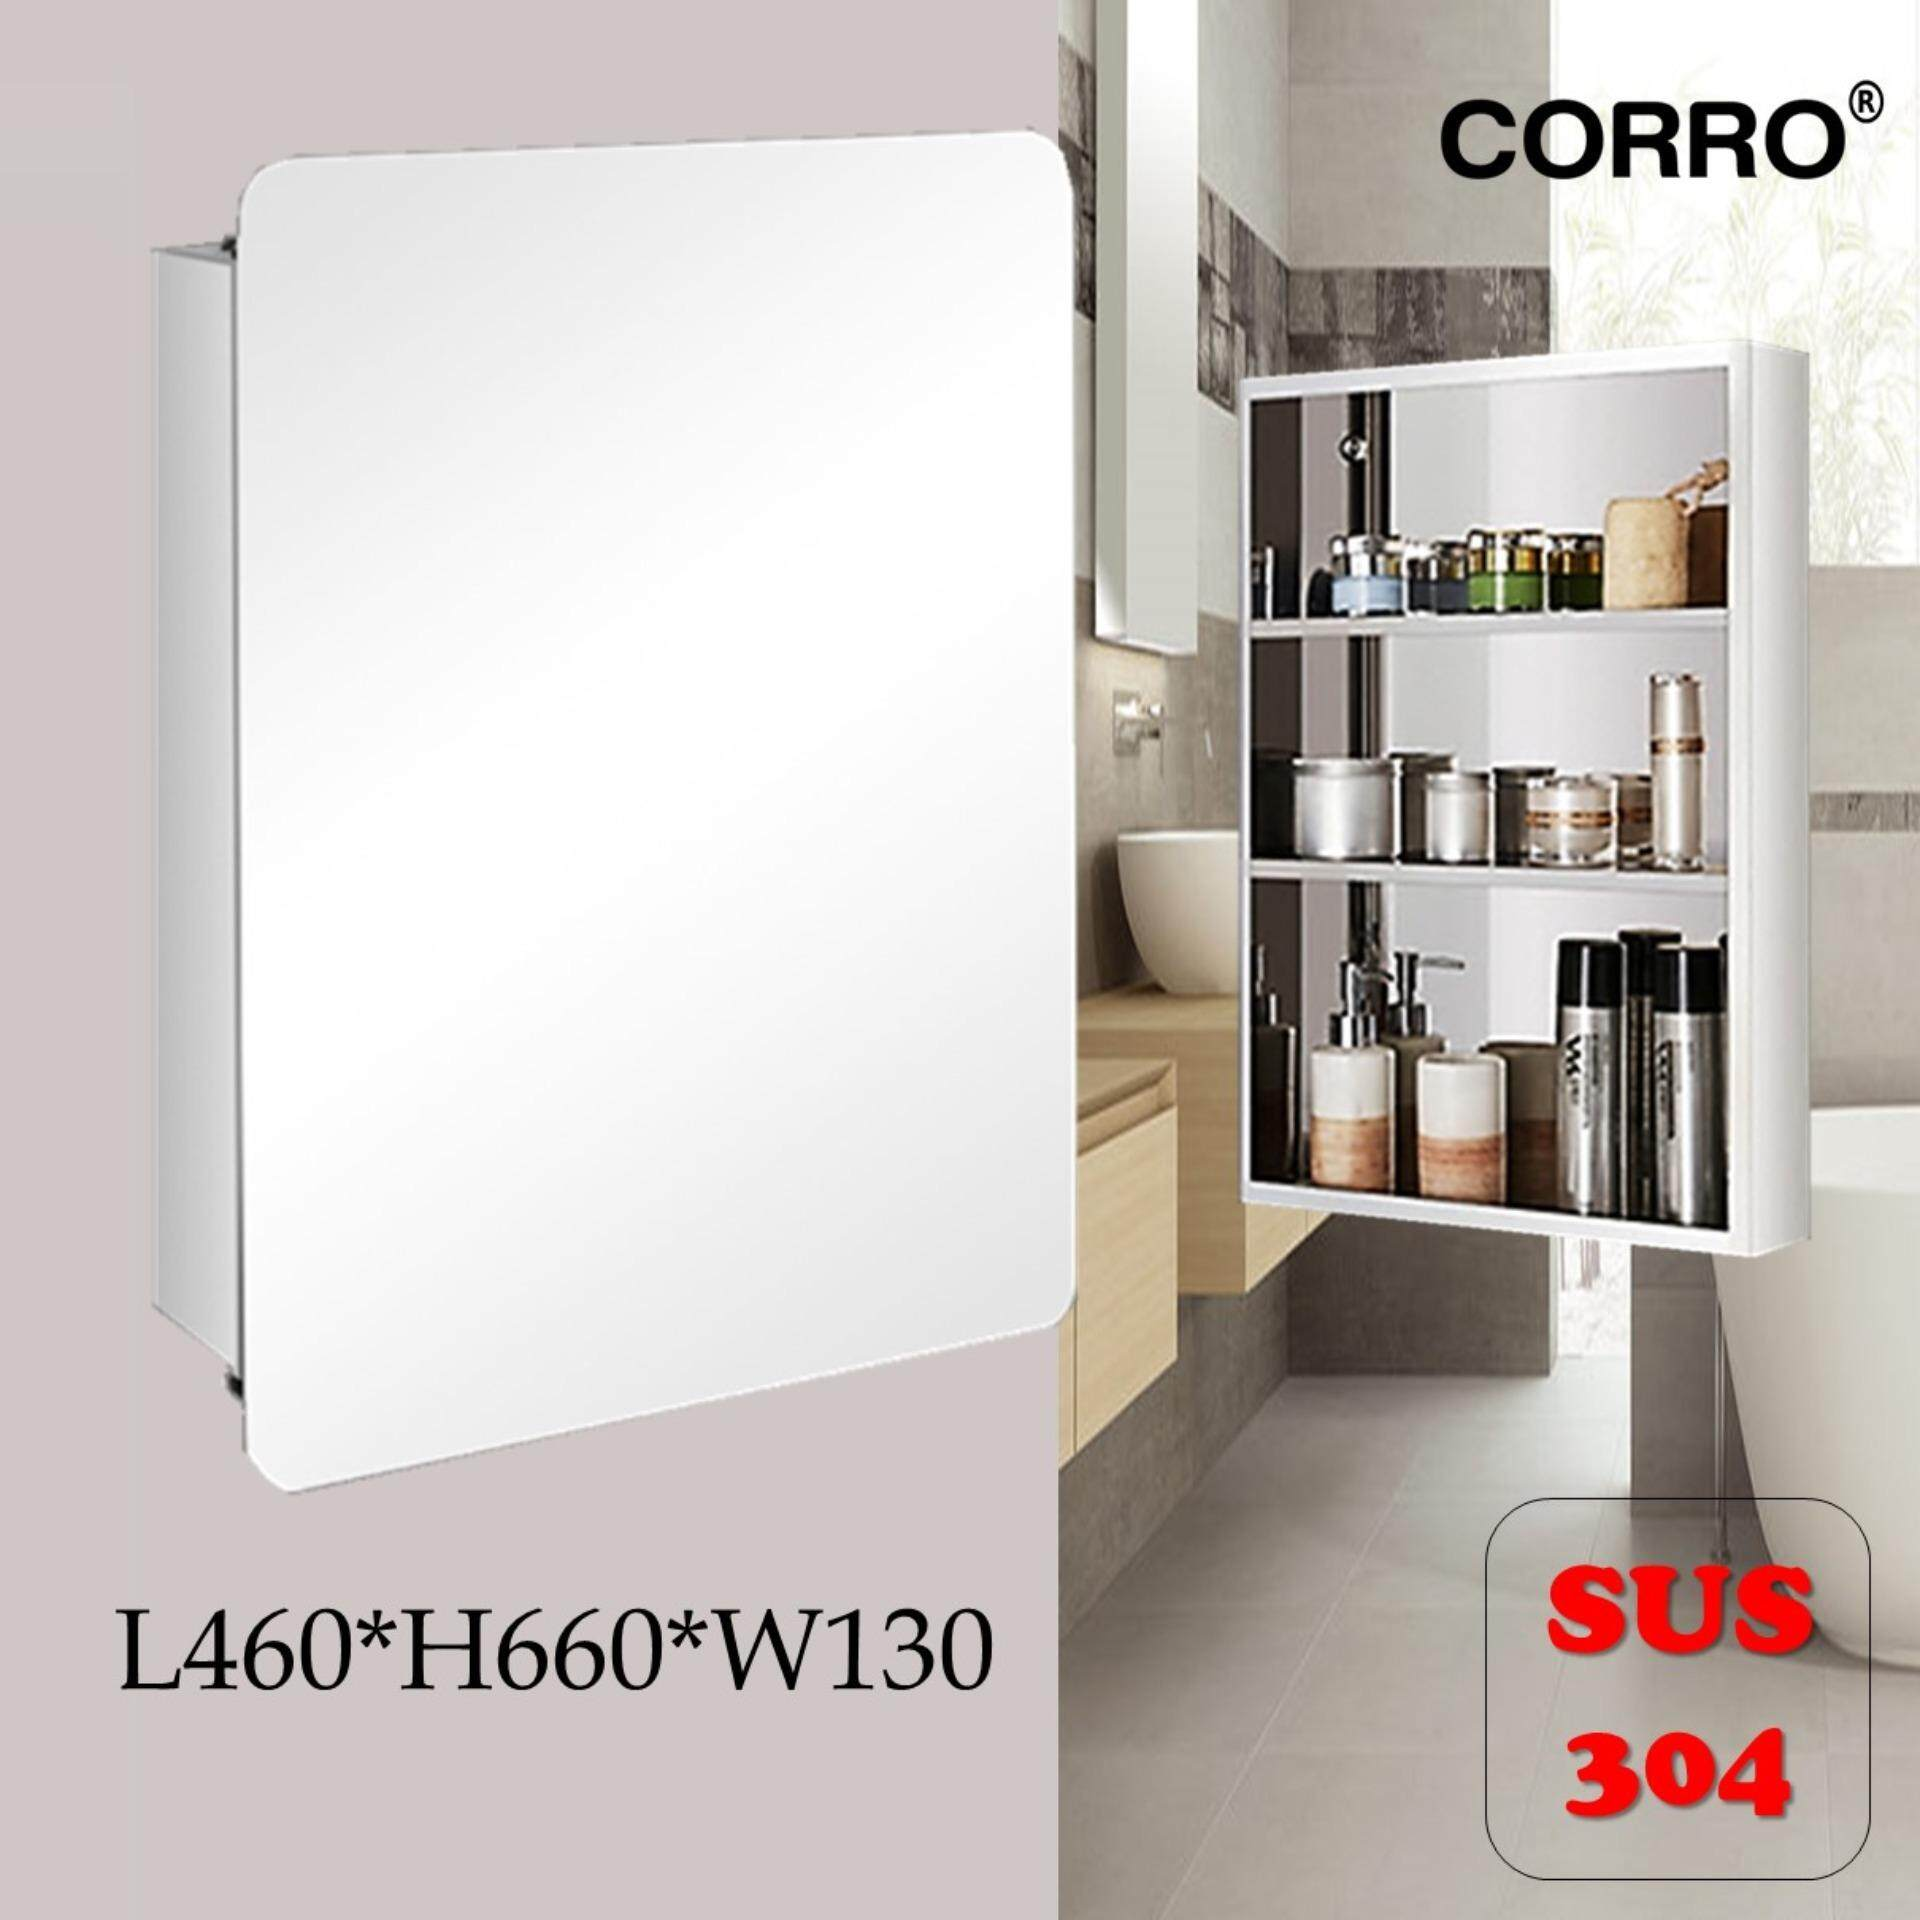 CORRO SUS304 Stainless Steel Bathroom Mirror Cabinet